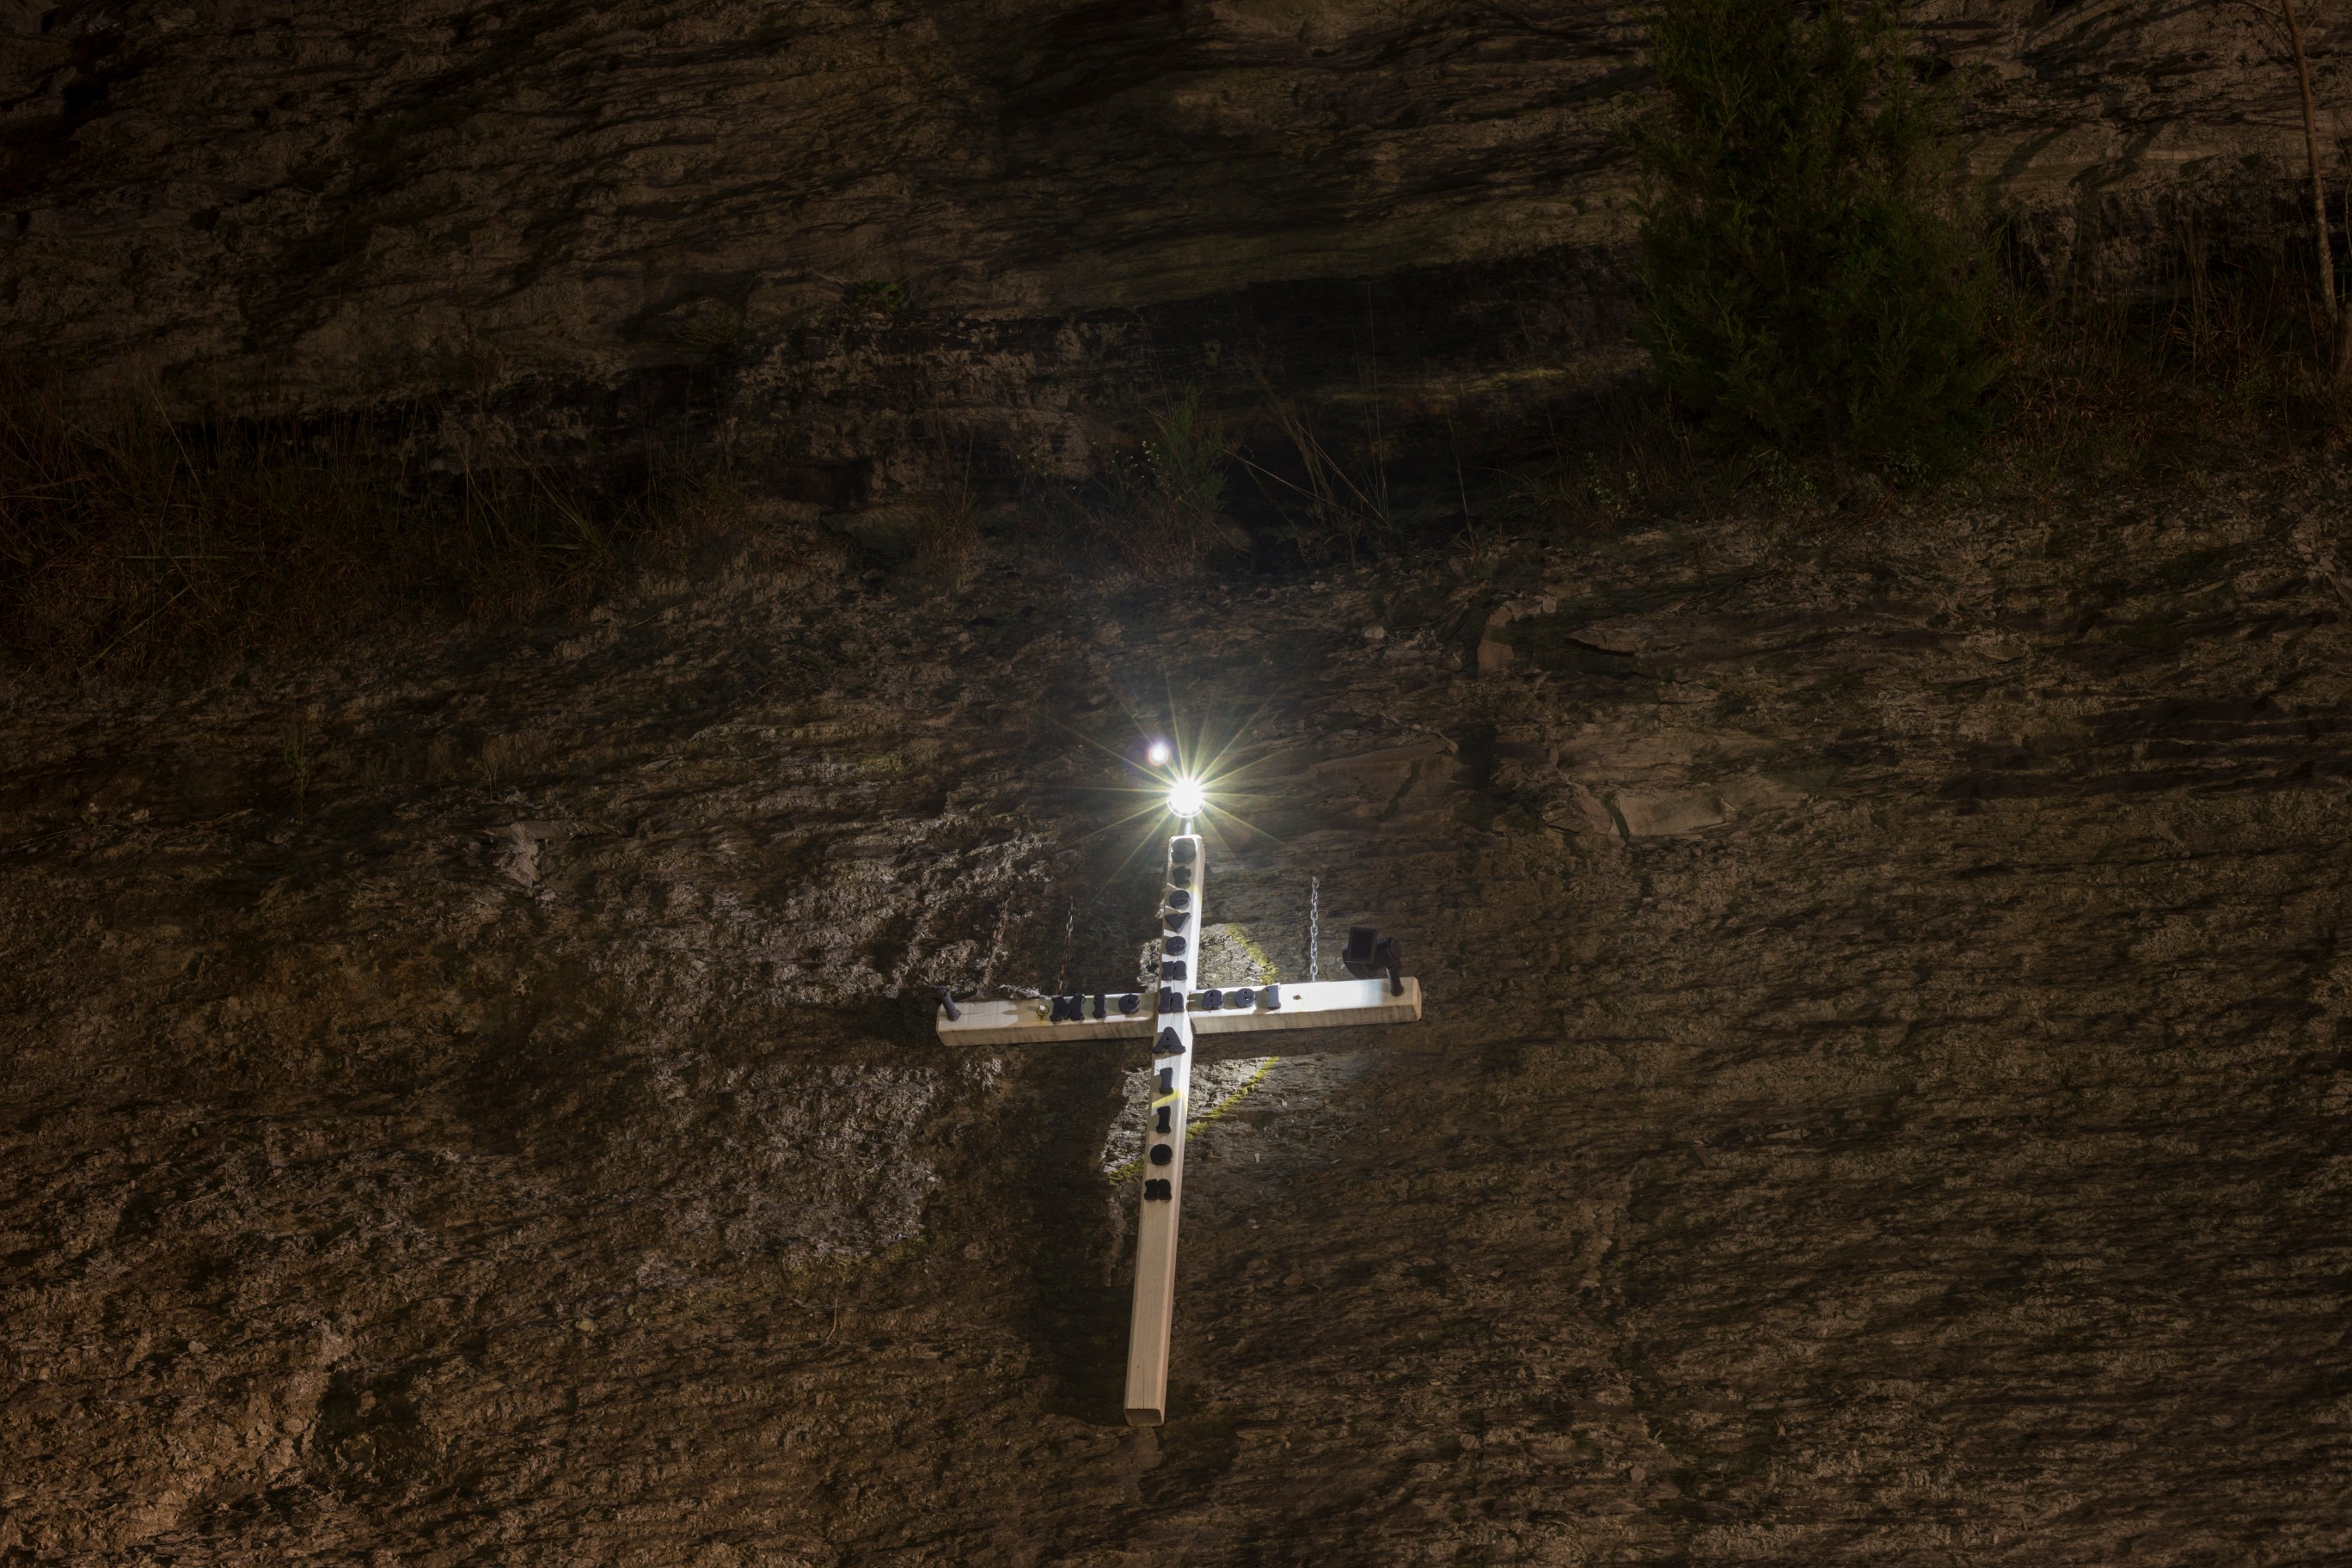 A cross in honor of a man named Steven Michael Allen is nailed into a wall of rock along I-23 near Tram, Ky., on Sunday, September 23, 2017. (Photo by Brittany Greeson/GroundTruth)